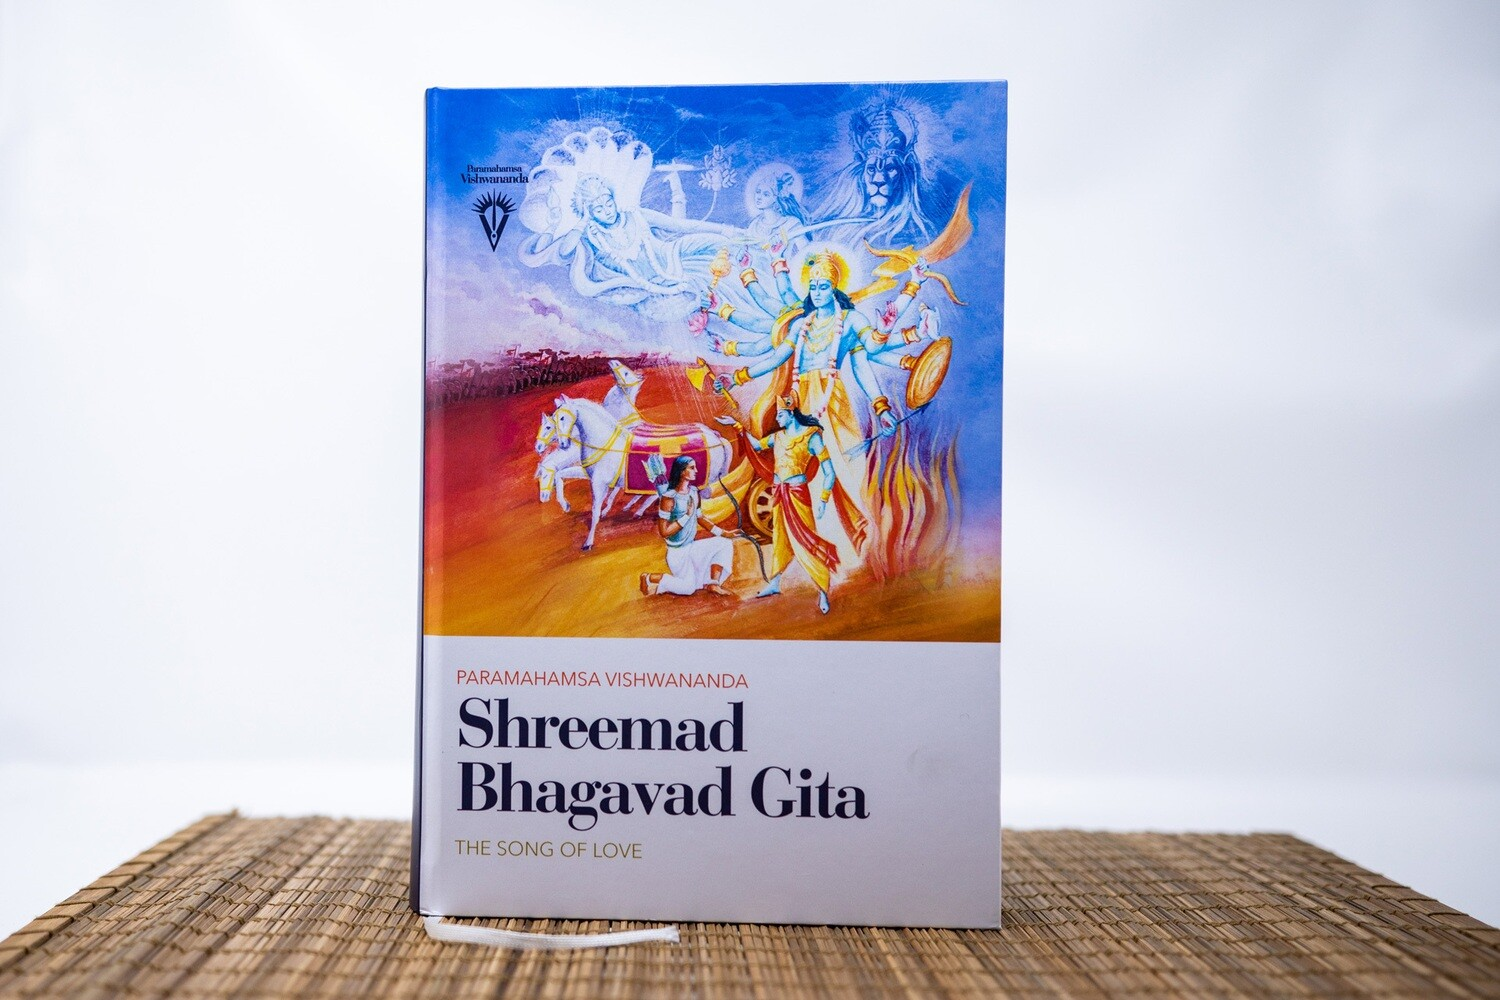 Shreemad Bhagavad Gita - The Song of Love